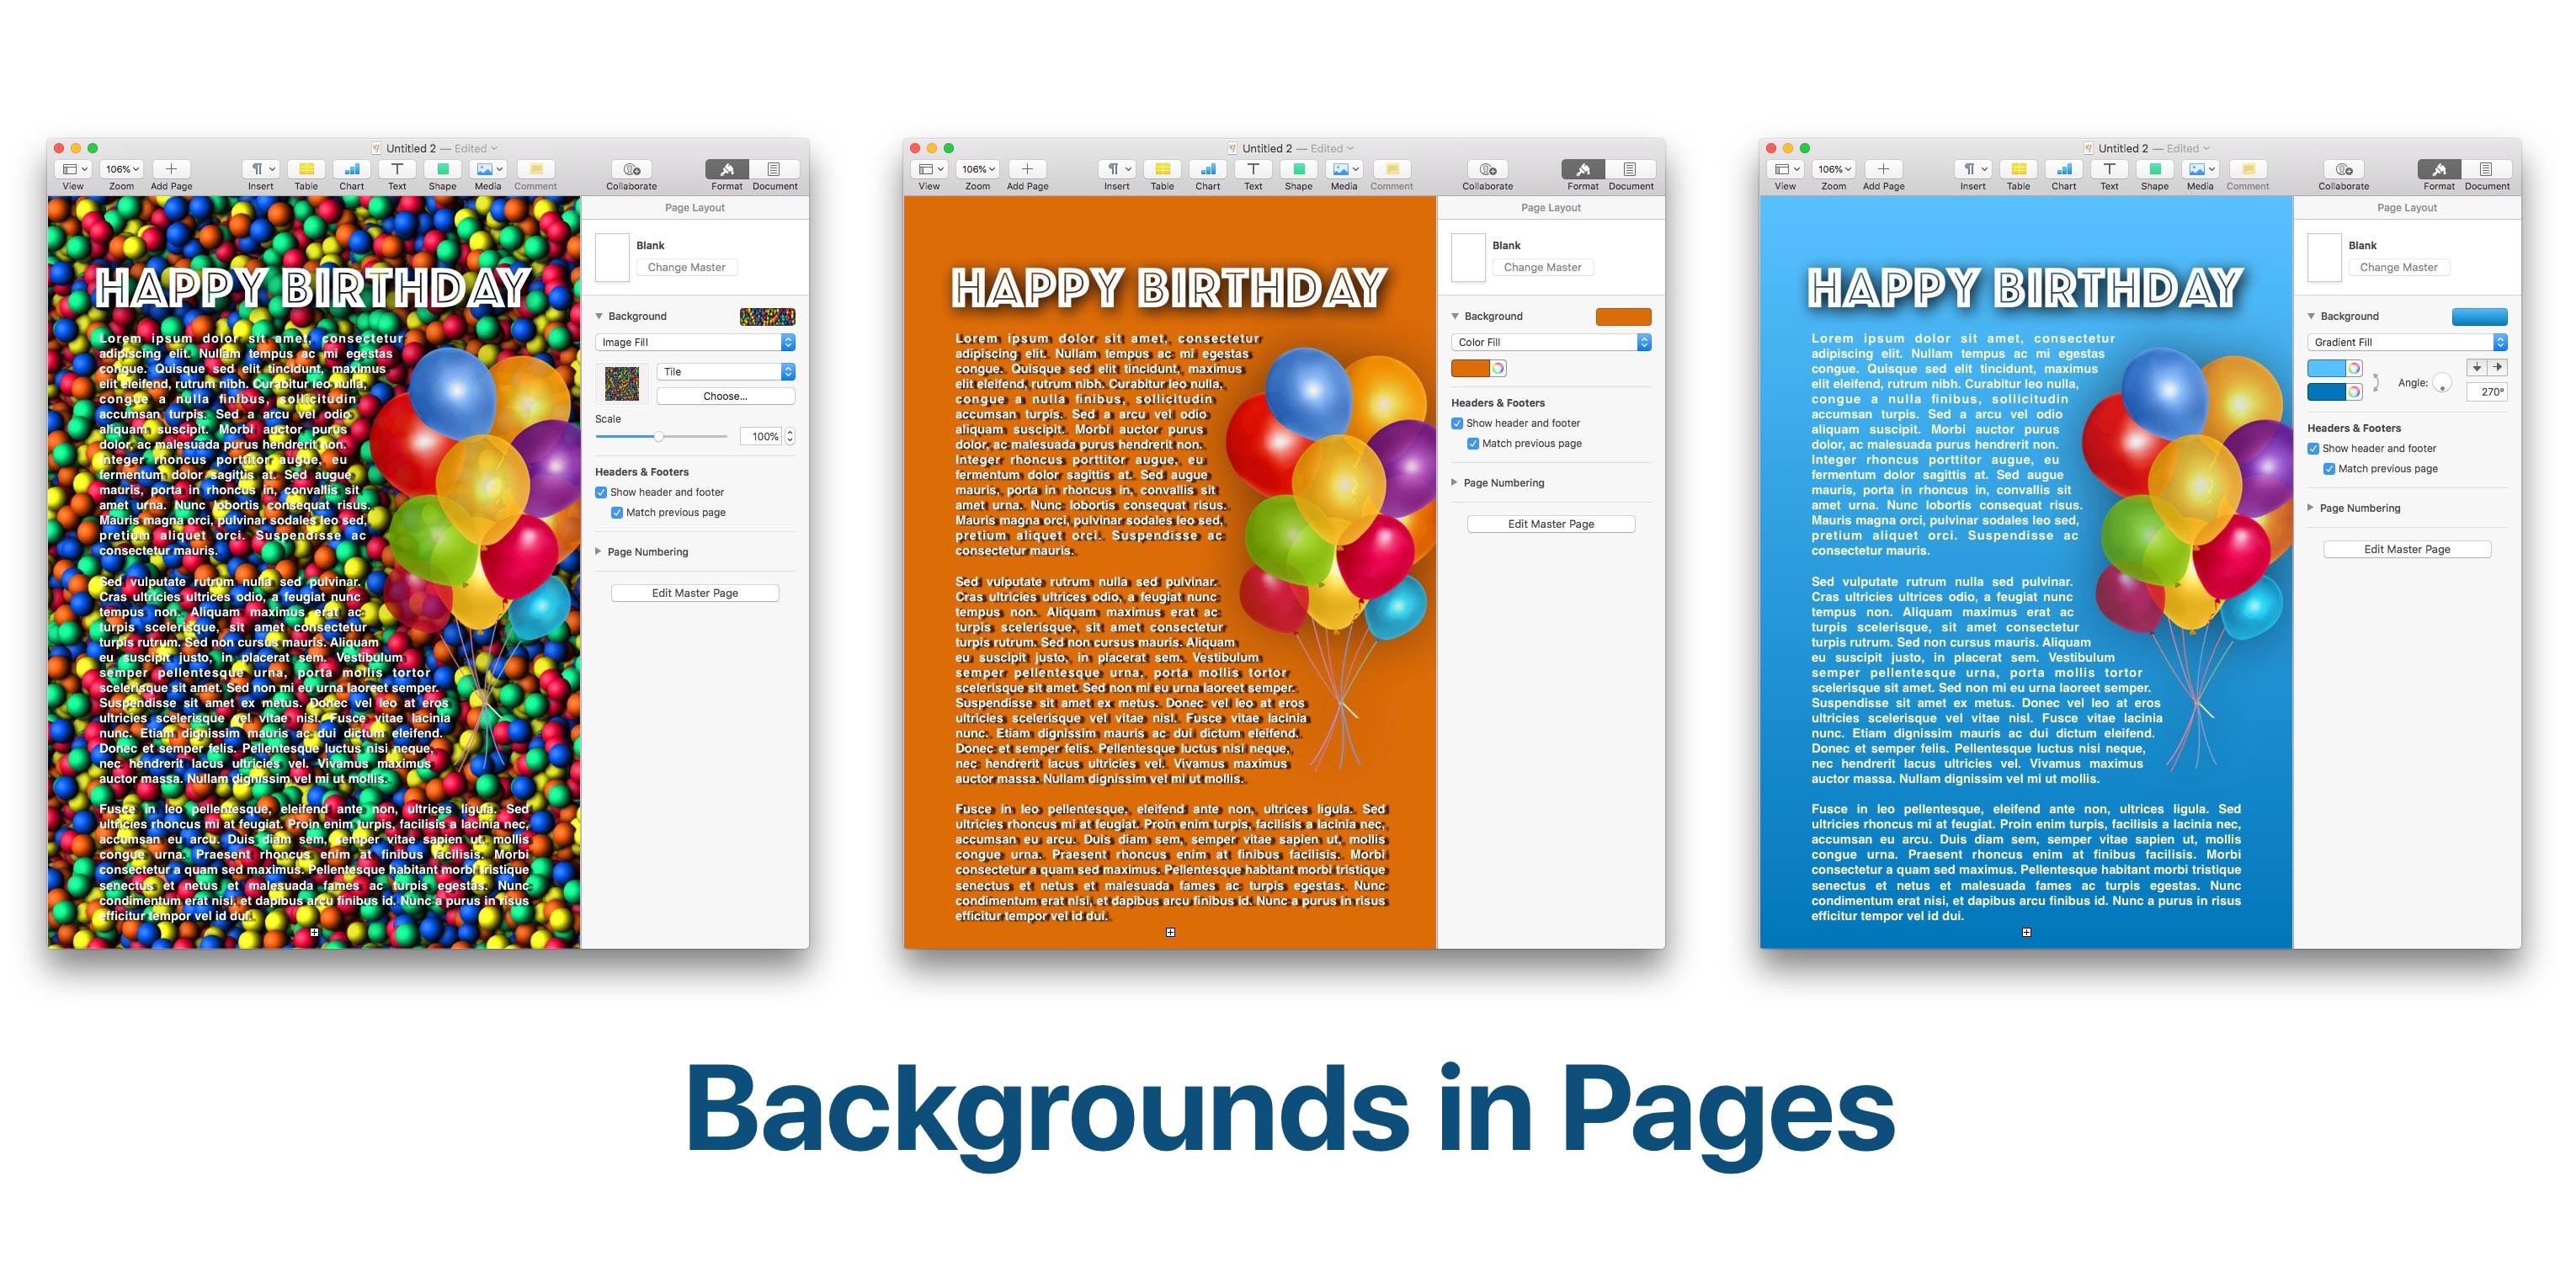 How To Change Background Color In Pages 9to5mac